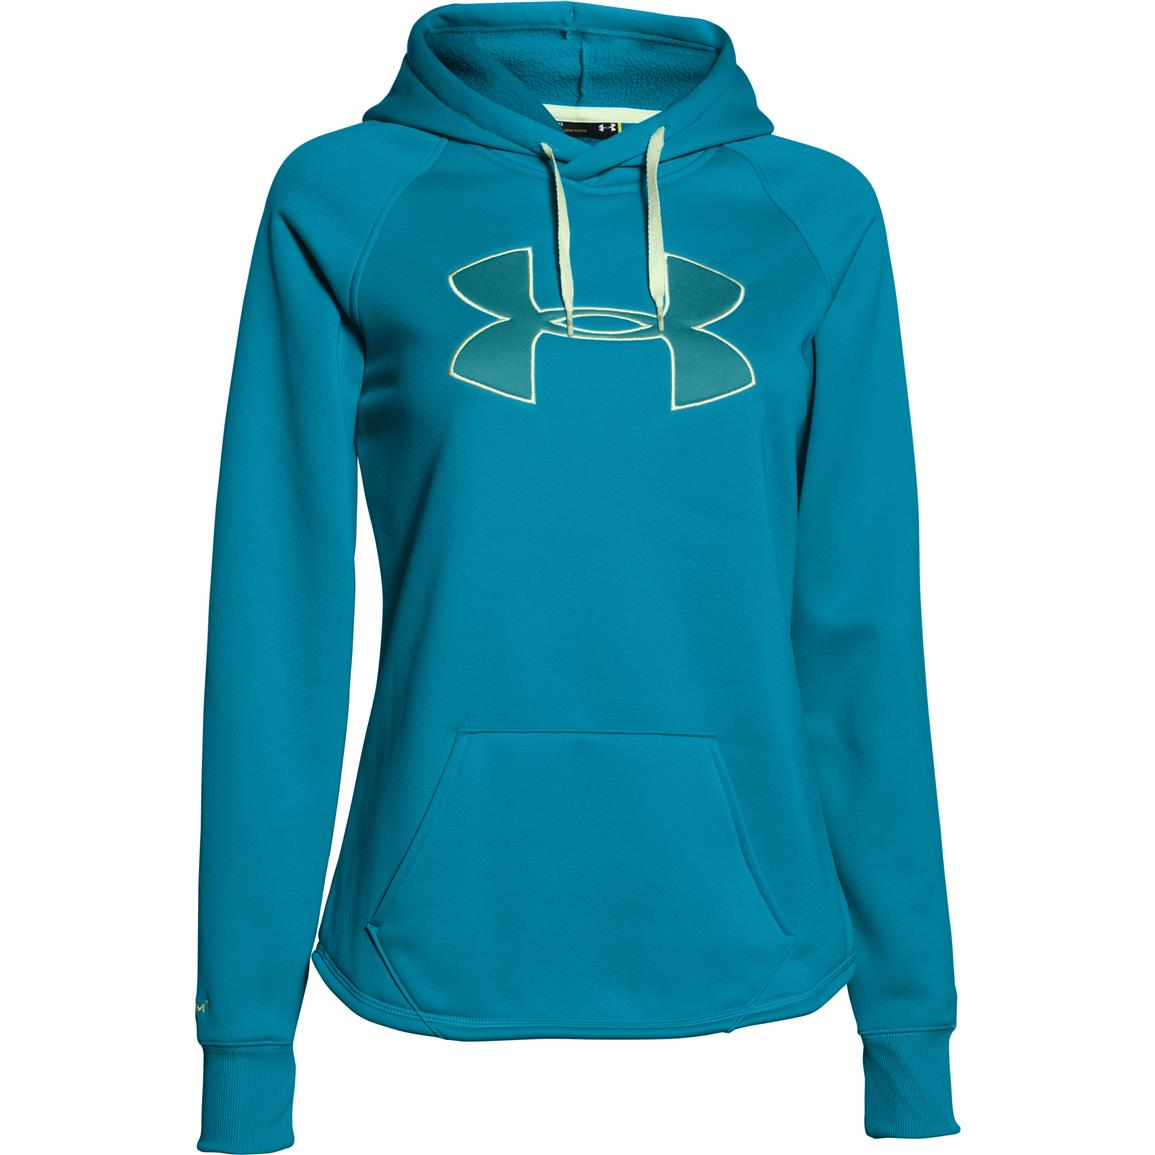 Women's Under Armour Rival Hoodie, Pacific Blue